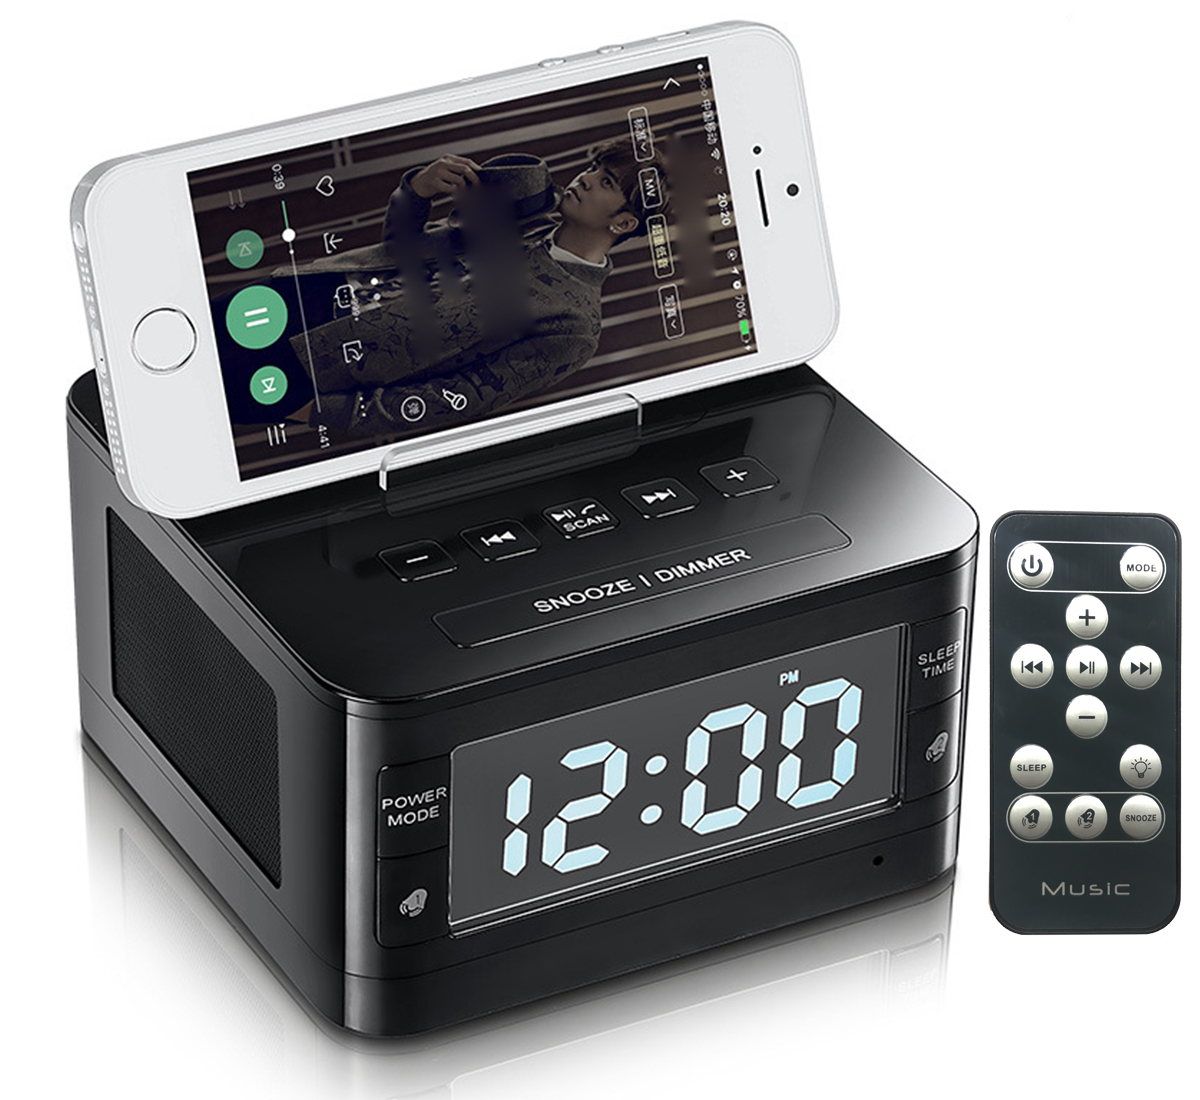 Dock Station Dual Alarm Clock, FM Radio with LED Display